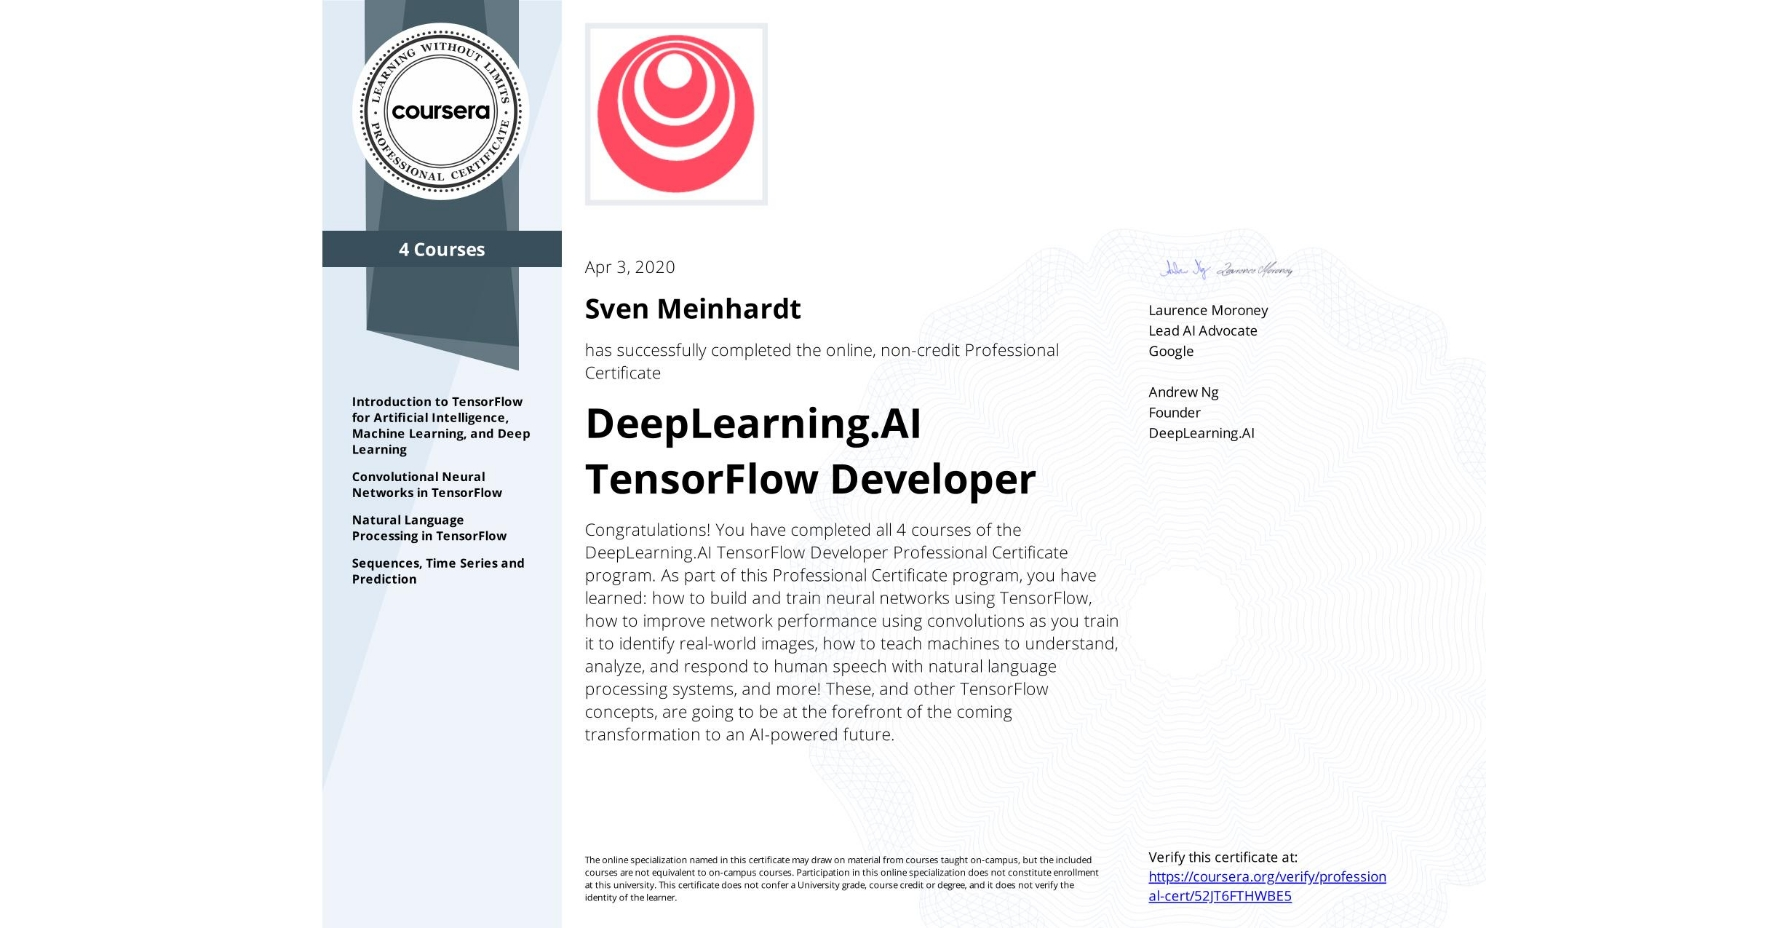 View certificate for Sven Meinhardt, DeepLearning.AI TensorFlow Developer, offered through Coursera. Congratulations! You have completed all 4 courses of the DeepLearning.AI TensorFlow Developer Professional Certificate program.   As part of this Professional Certificate program, you have learned: how to build and train neural networks using TensorFlow, how to improve network performance using convolutions as you train it to identify real-world images, how to teach machines to understand, analyze, and respond to human speech with natural language processing systems, and more!  These, and other TensorFlow concepts, are going to be at the forefront of the coming transformation to an AI-powered future.